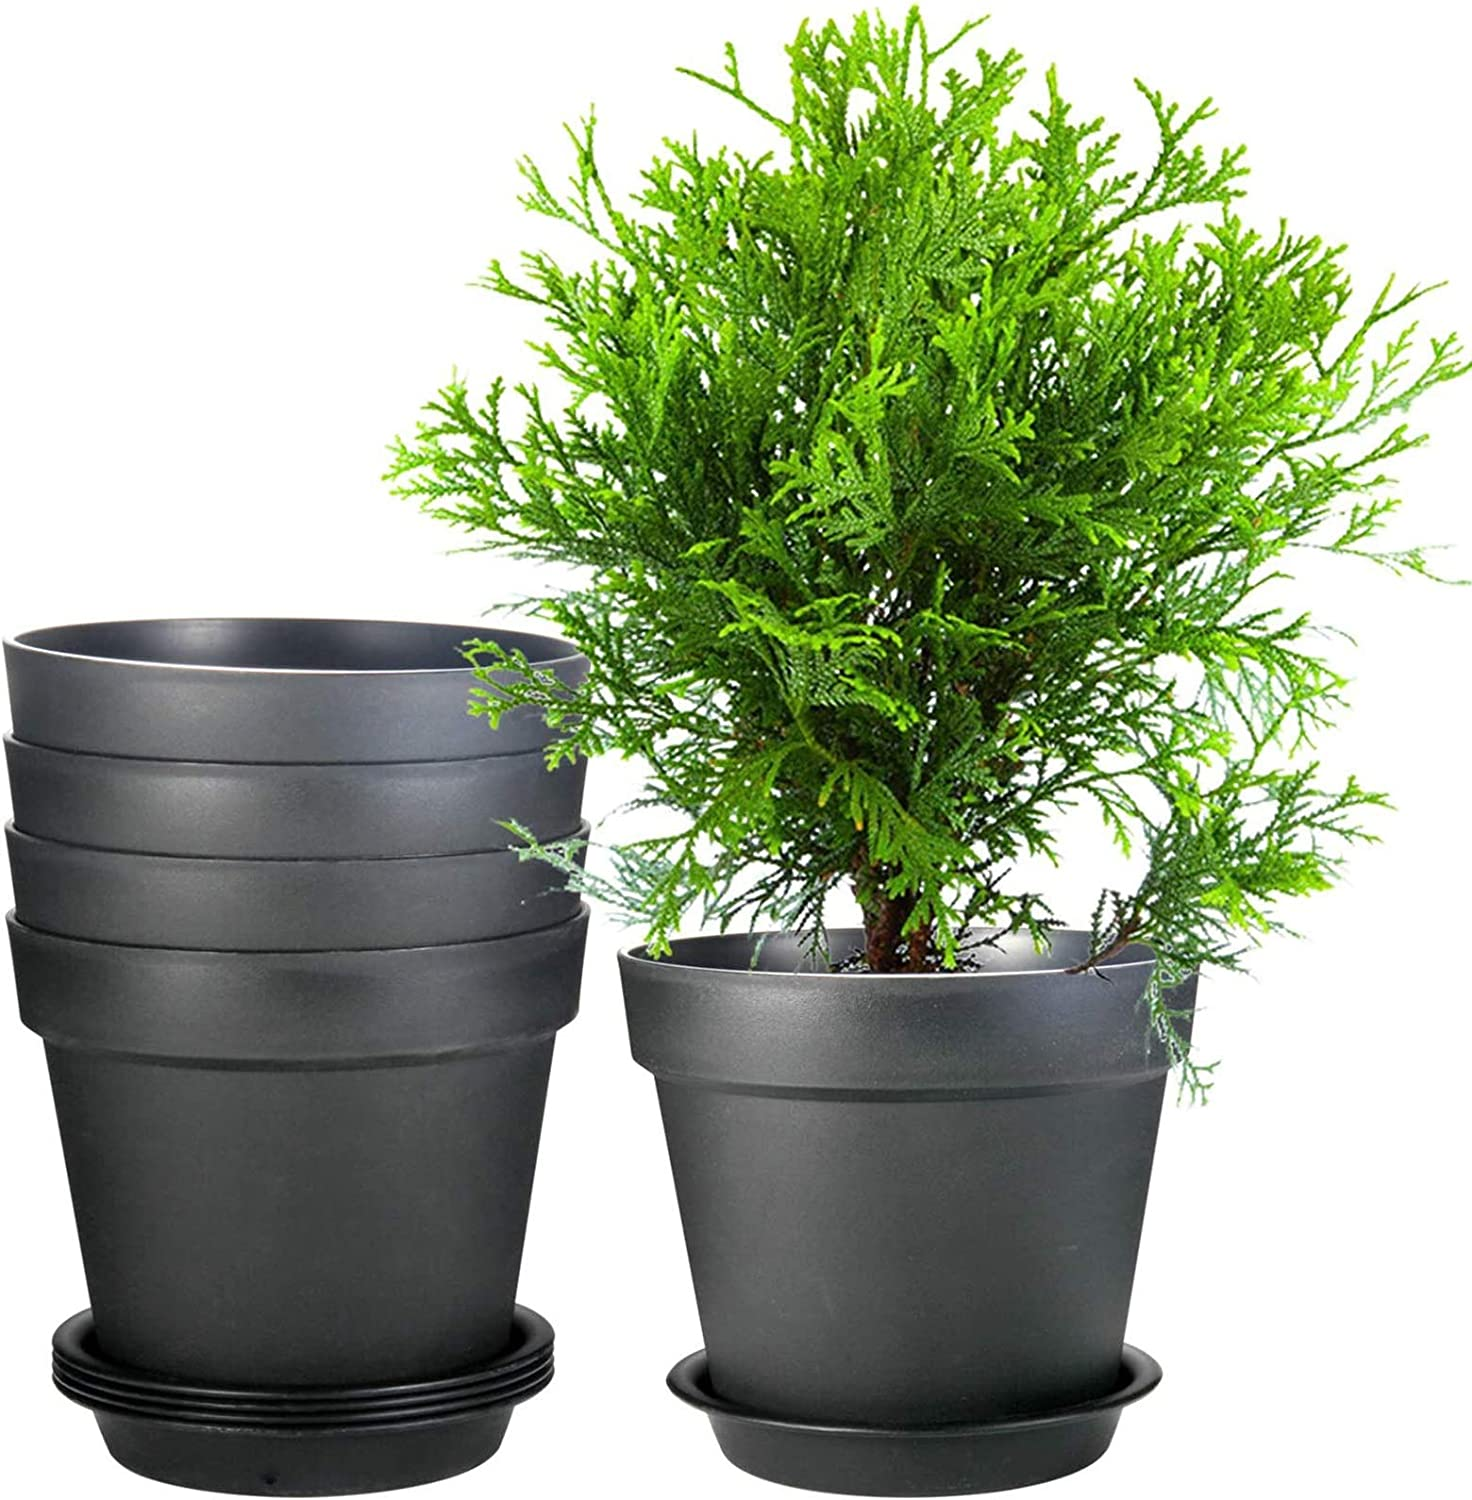 Flower Pots, ZOUTOG 9.5 Inch Outdoor Planters, Planters for Flowers, Snake Plants, African Violets, Pack of 5, Plants not Included